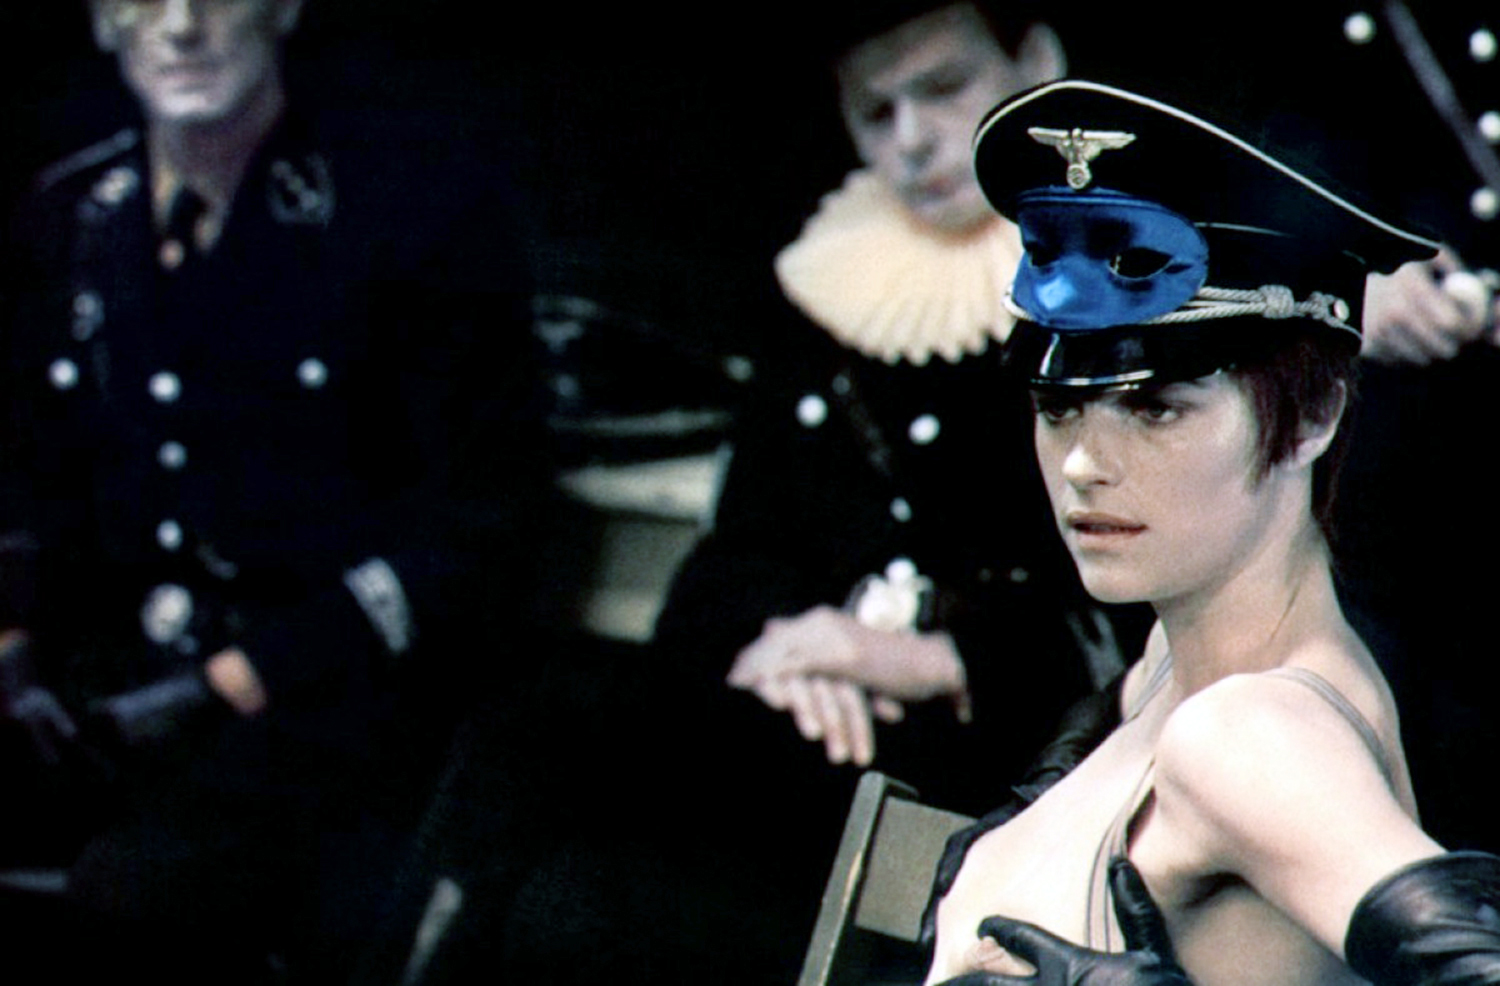 BDSM Movies - The Night Porter, woman with hat